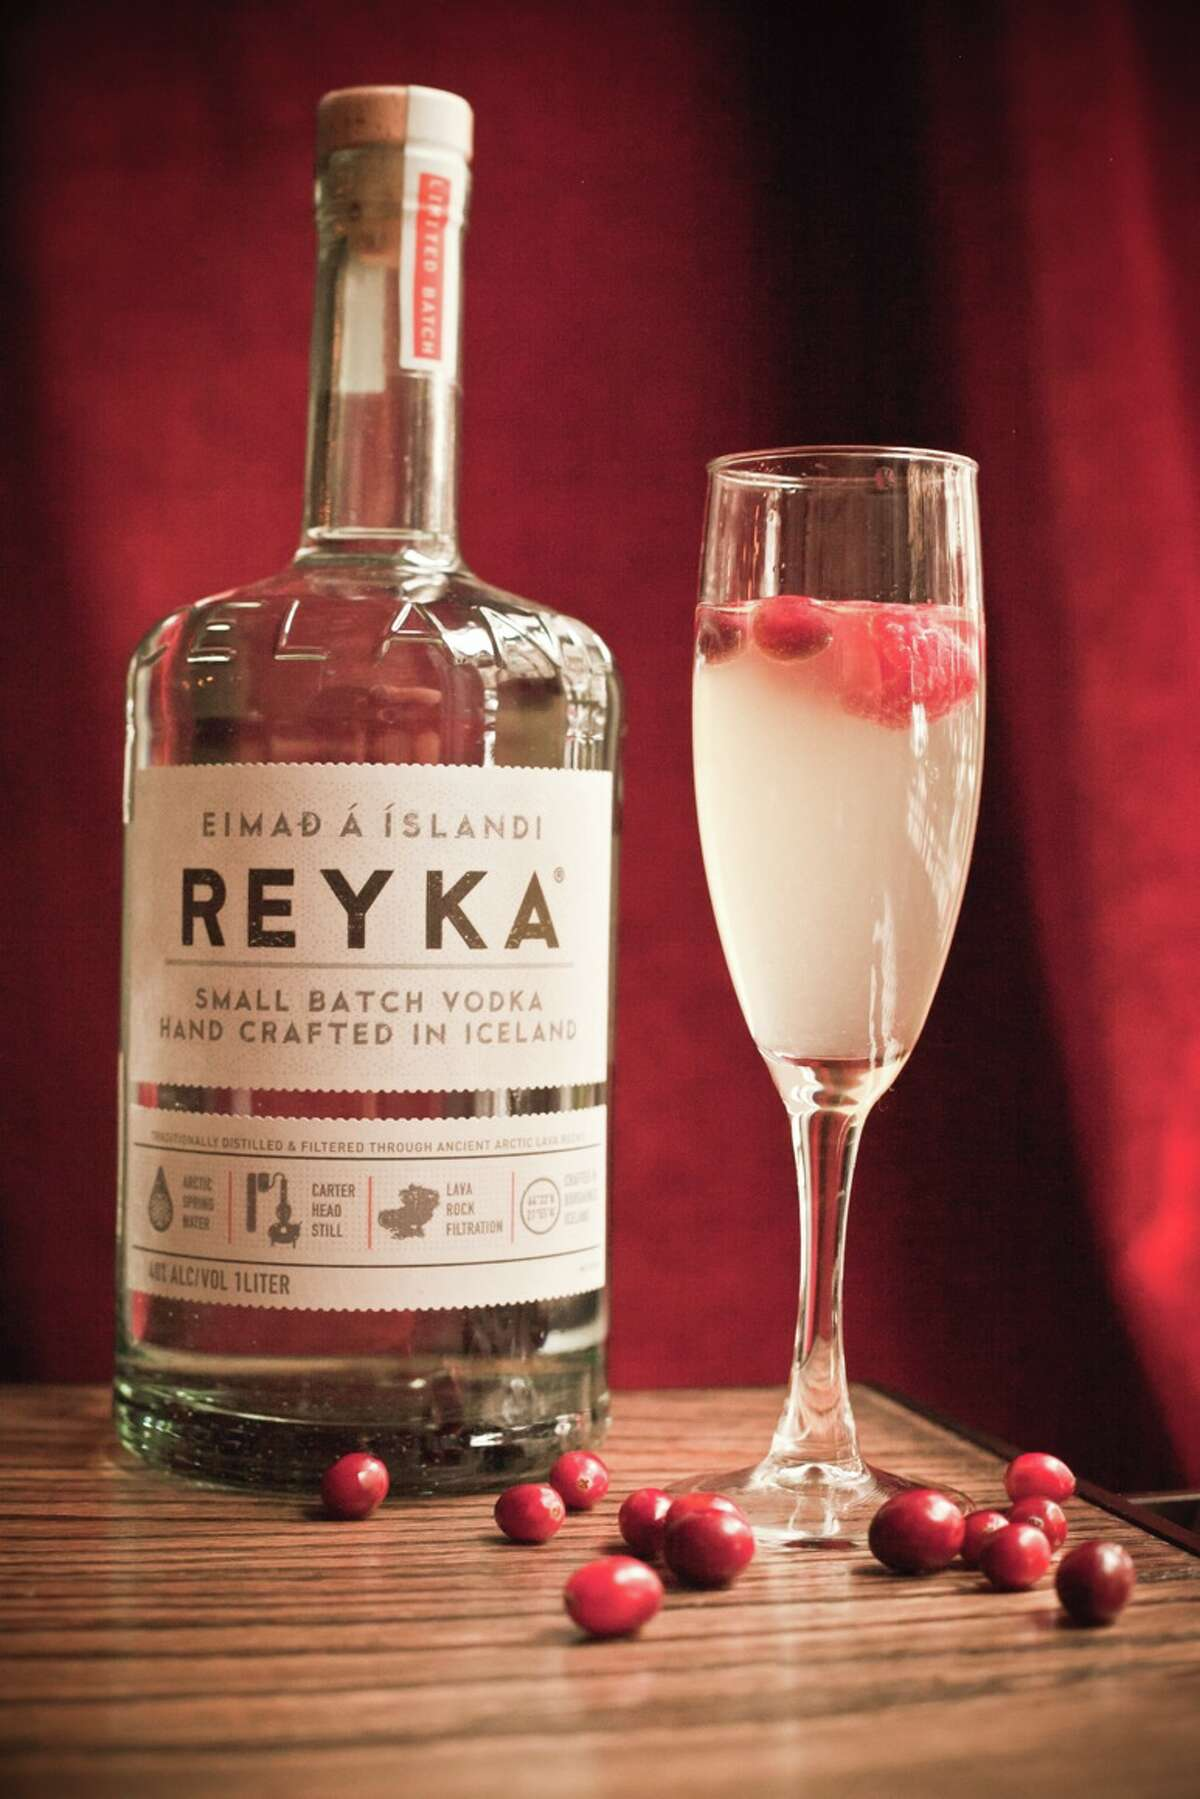 Streak 75 It's not fall anymore but Reyka is here to help you feel like it is. A perfect mix of vodka and champagne will help warm you up this holiday season. Make sure you bedazzle this beauty with some tasty cranberries.